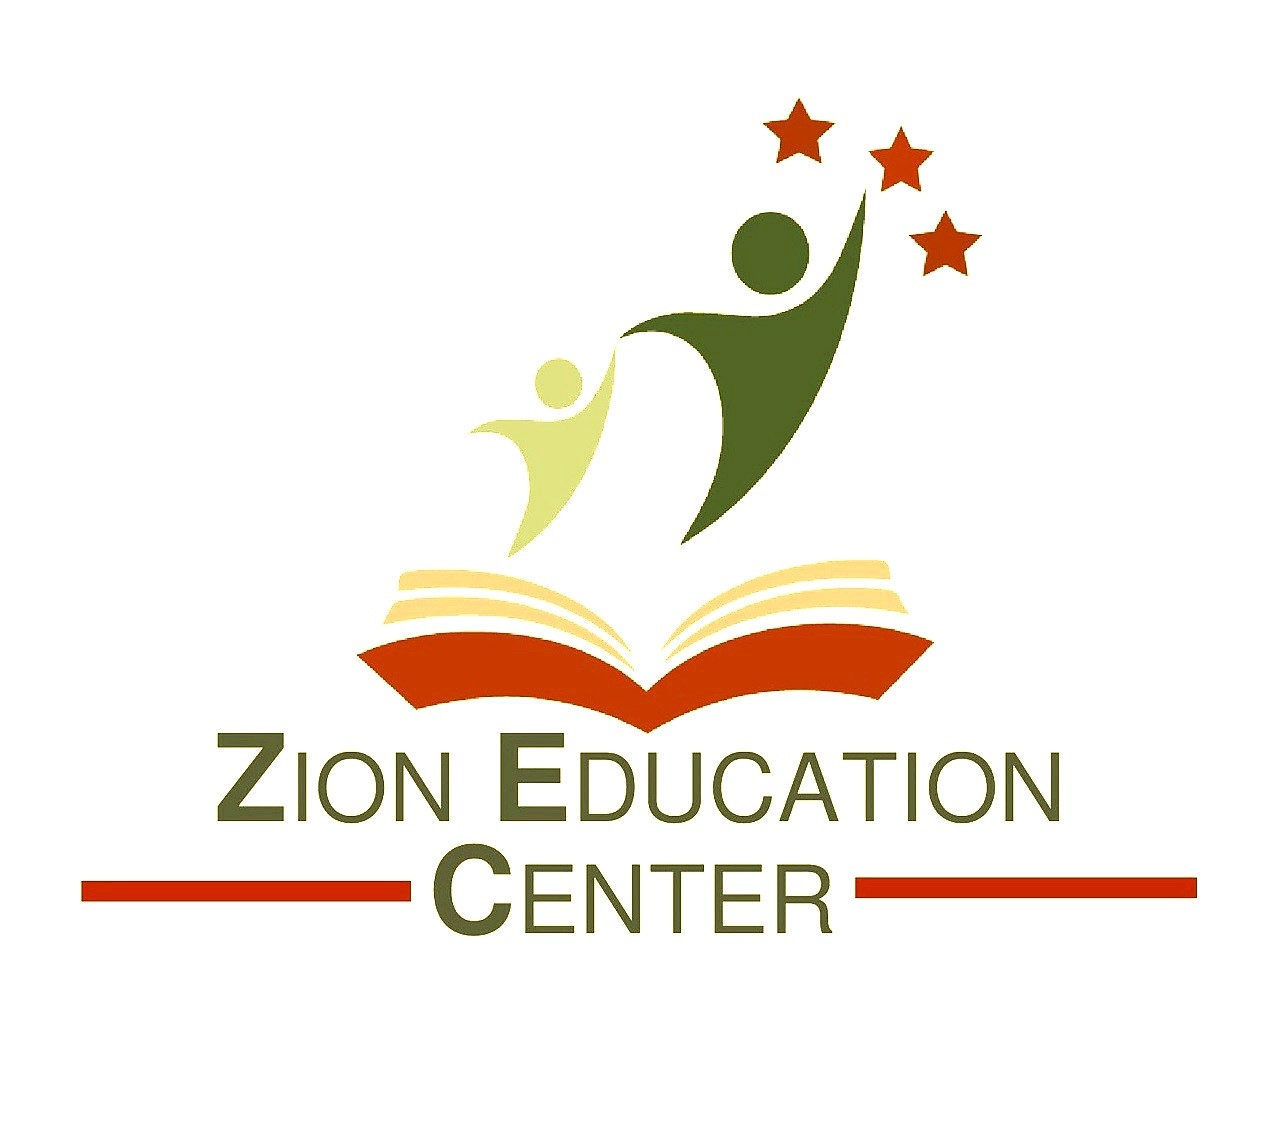 ZION EDUCATION CENTER, INC.